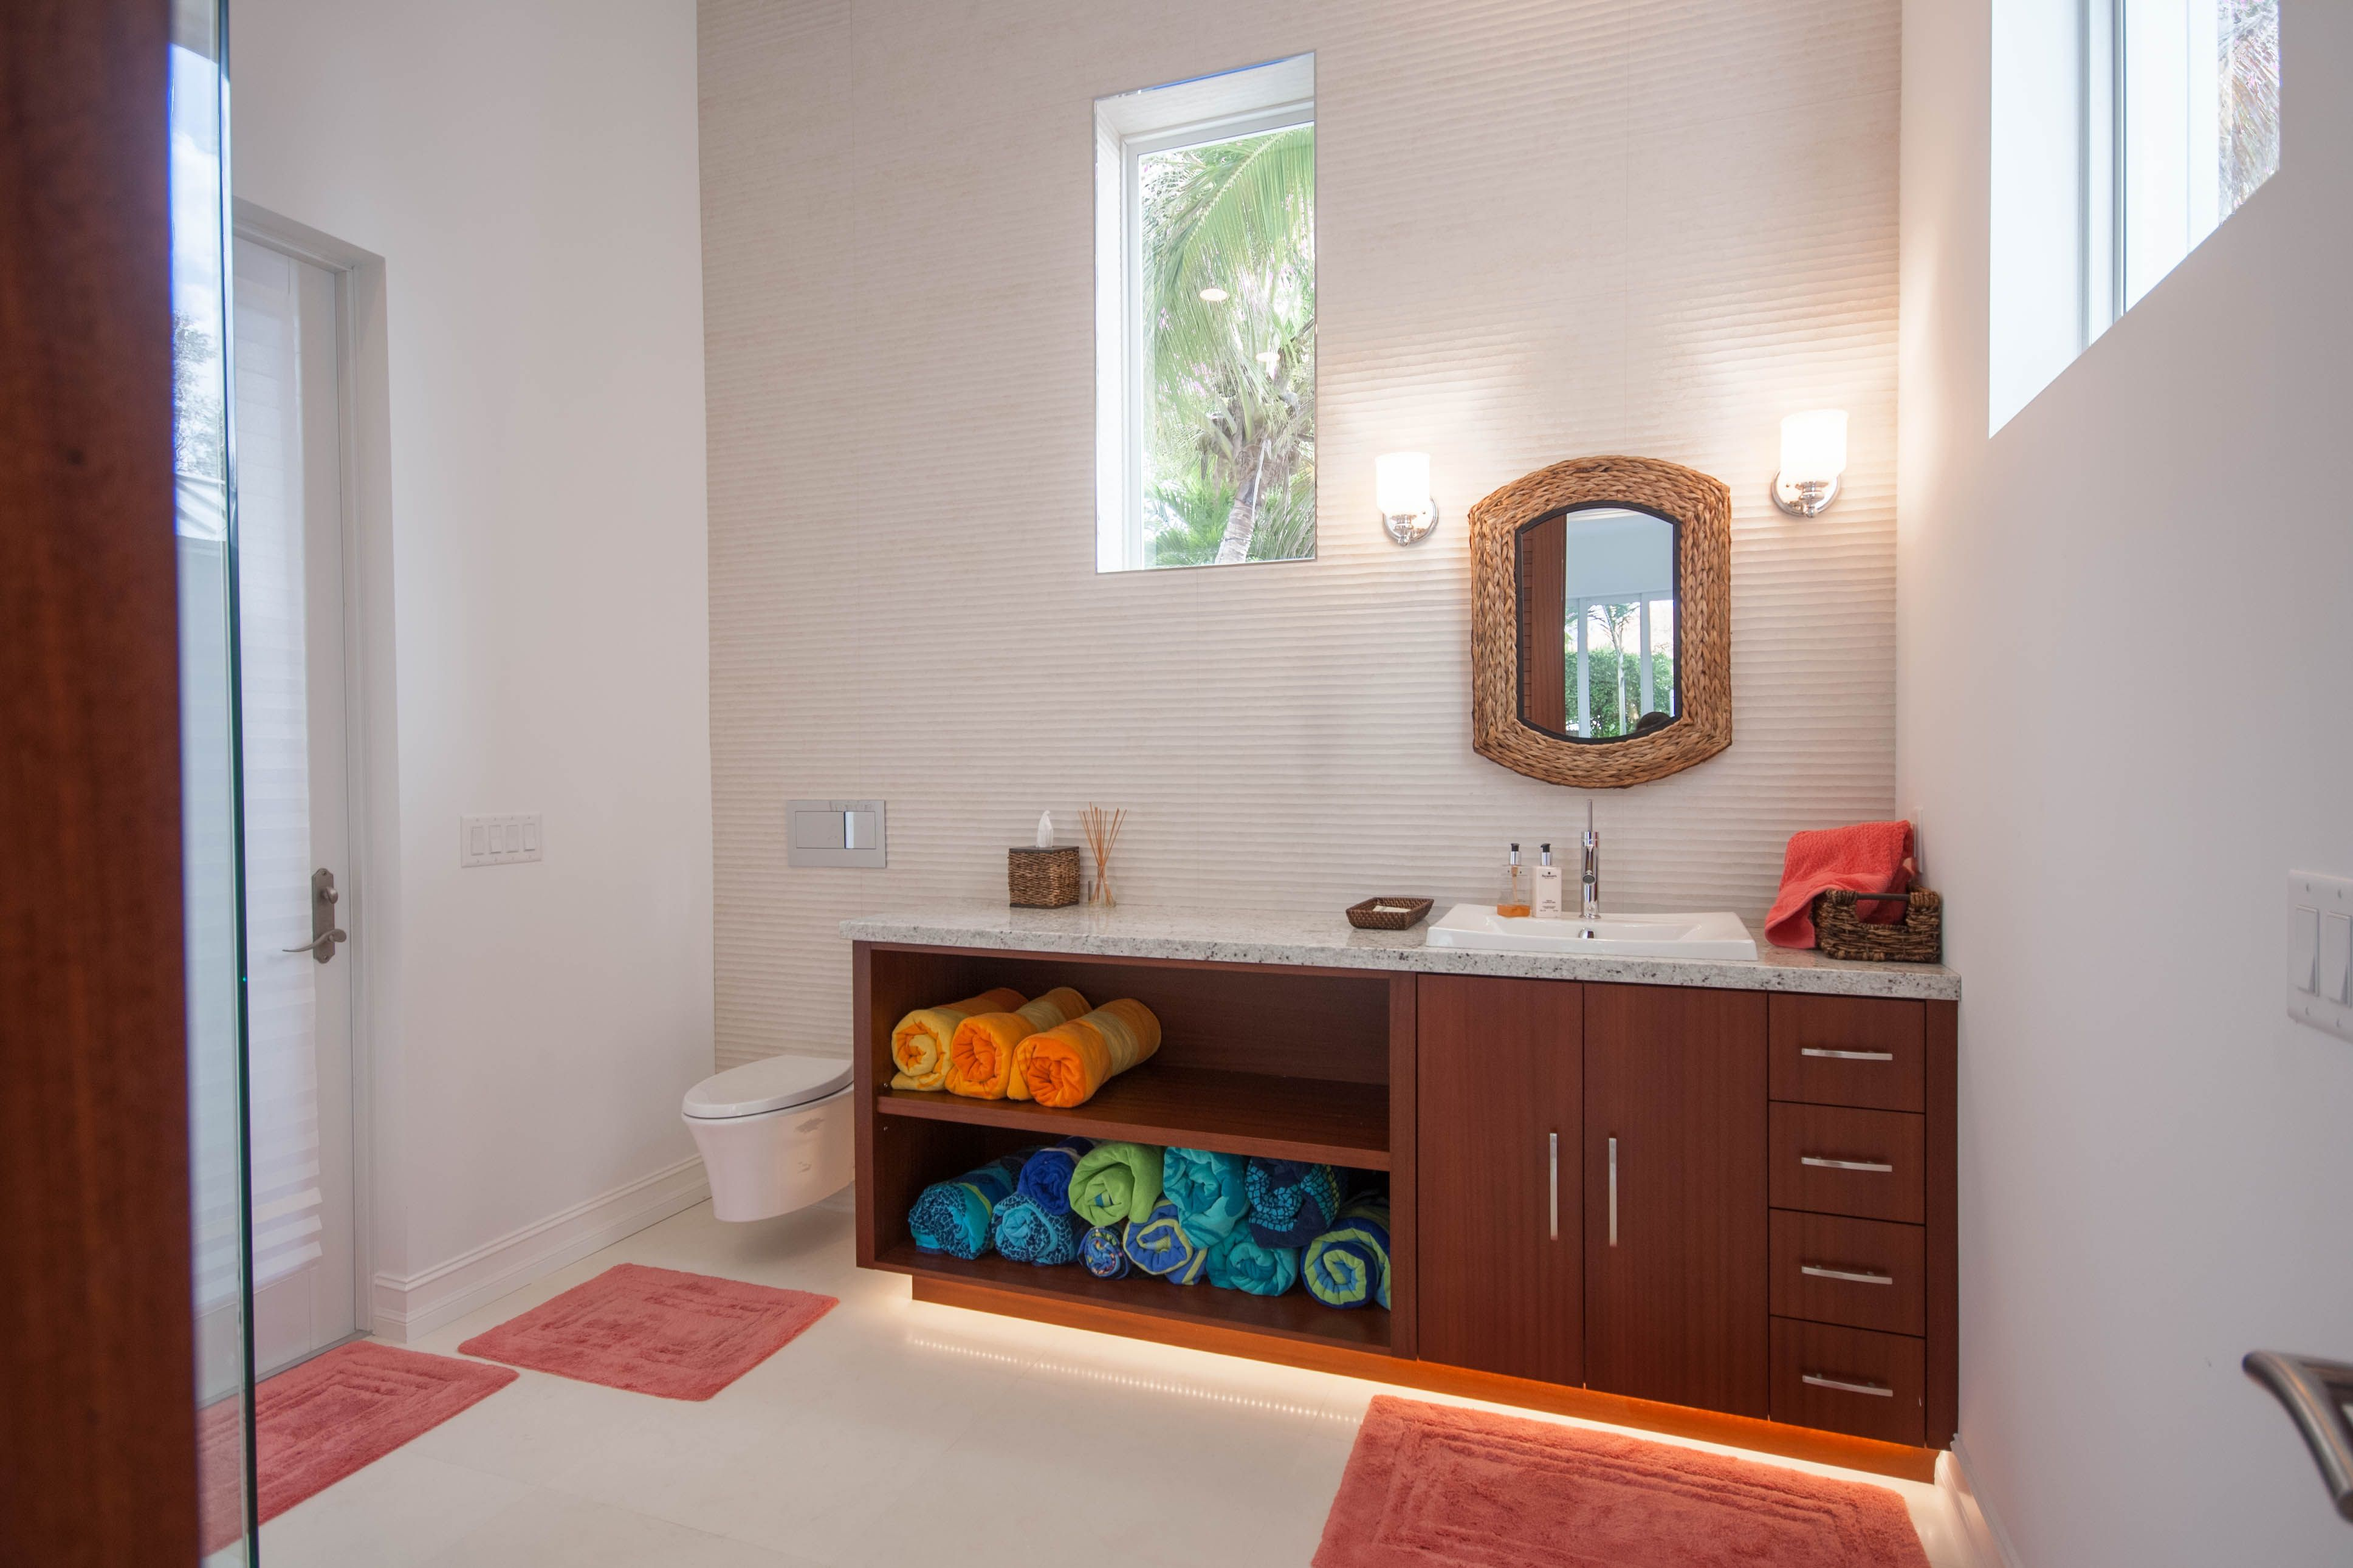 Bathroom vanities boca raton fl - Custom Bathroom Vanity All Units Are Custom Designed And Manufactured To Fit Your Space